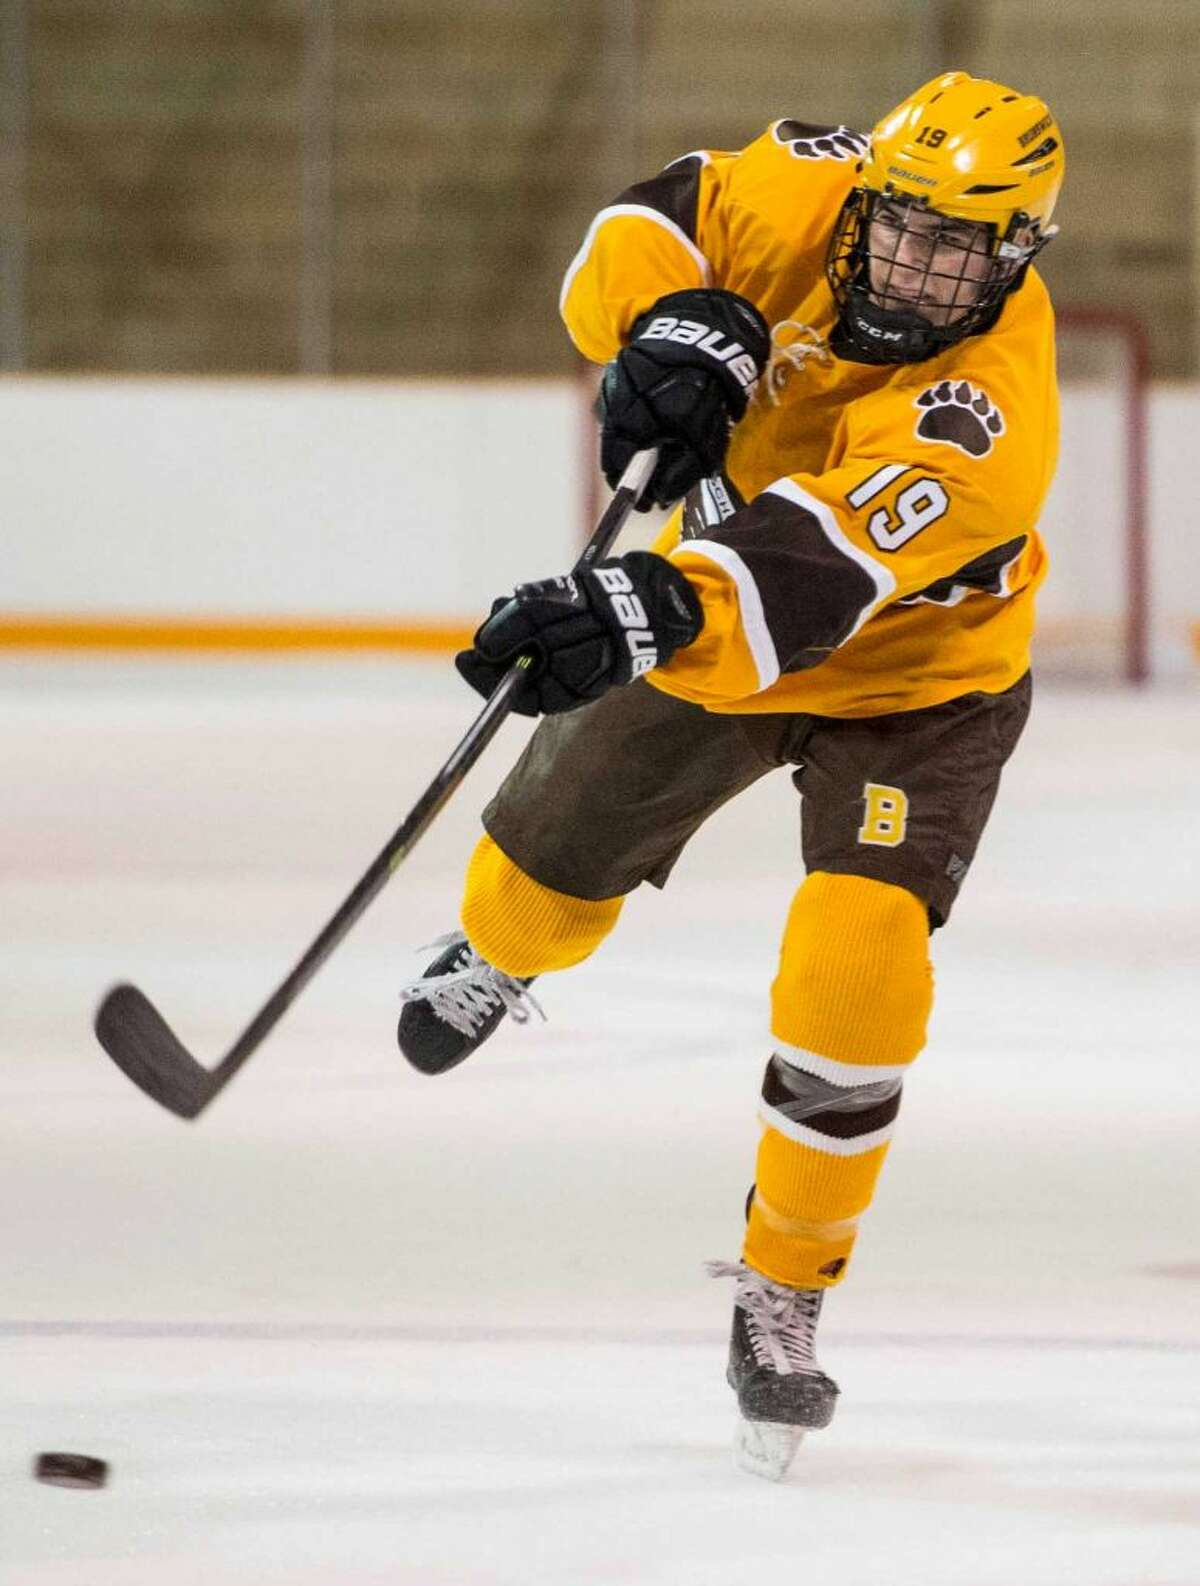 Brunswick School senior defenseman Max Fuld was recently named to the All-New England Hockey Team.